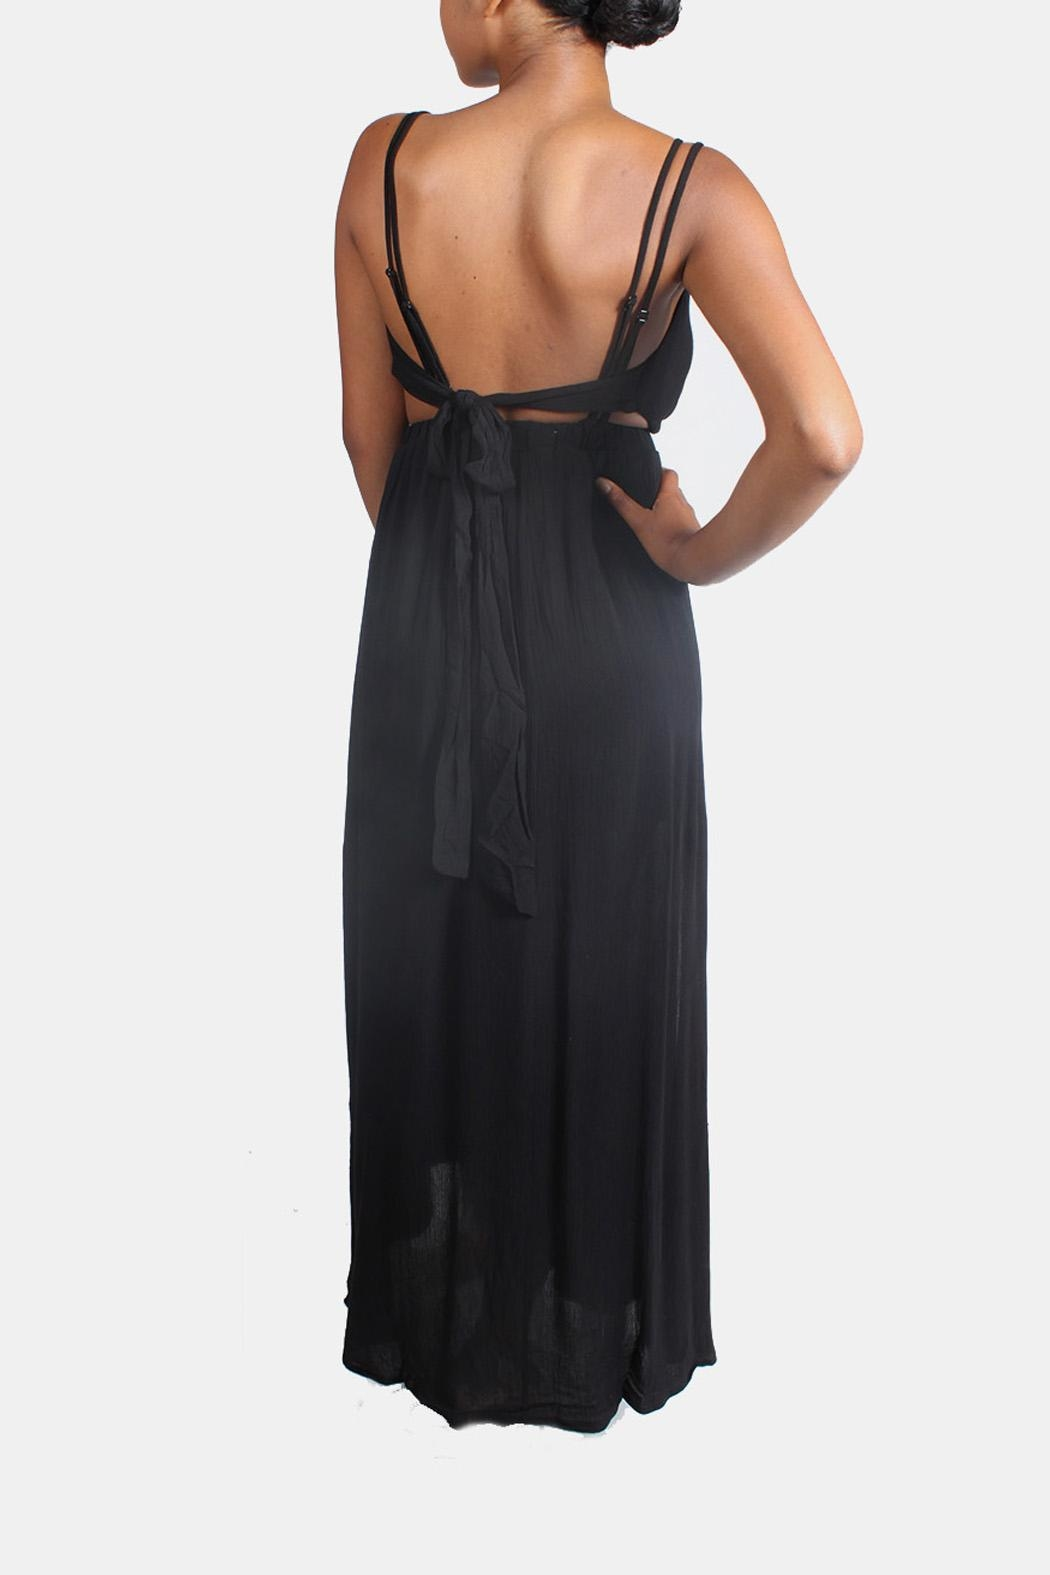 rokoko Tie Back Maxi Dress - Back Cropped Image